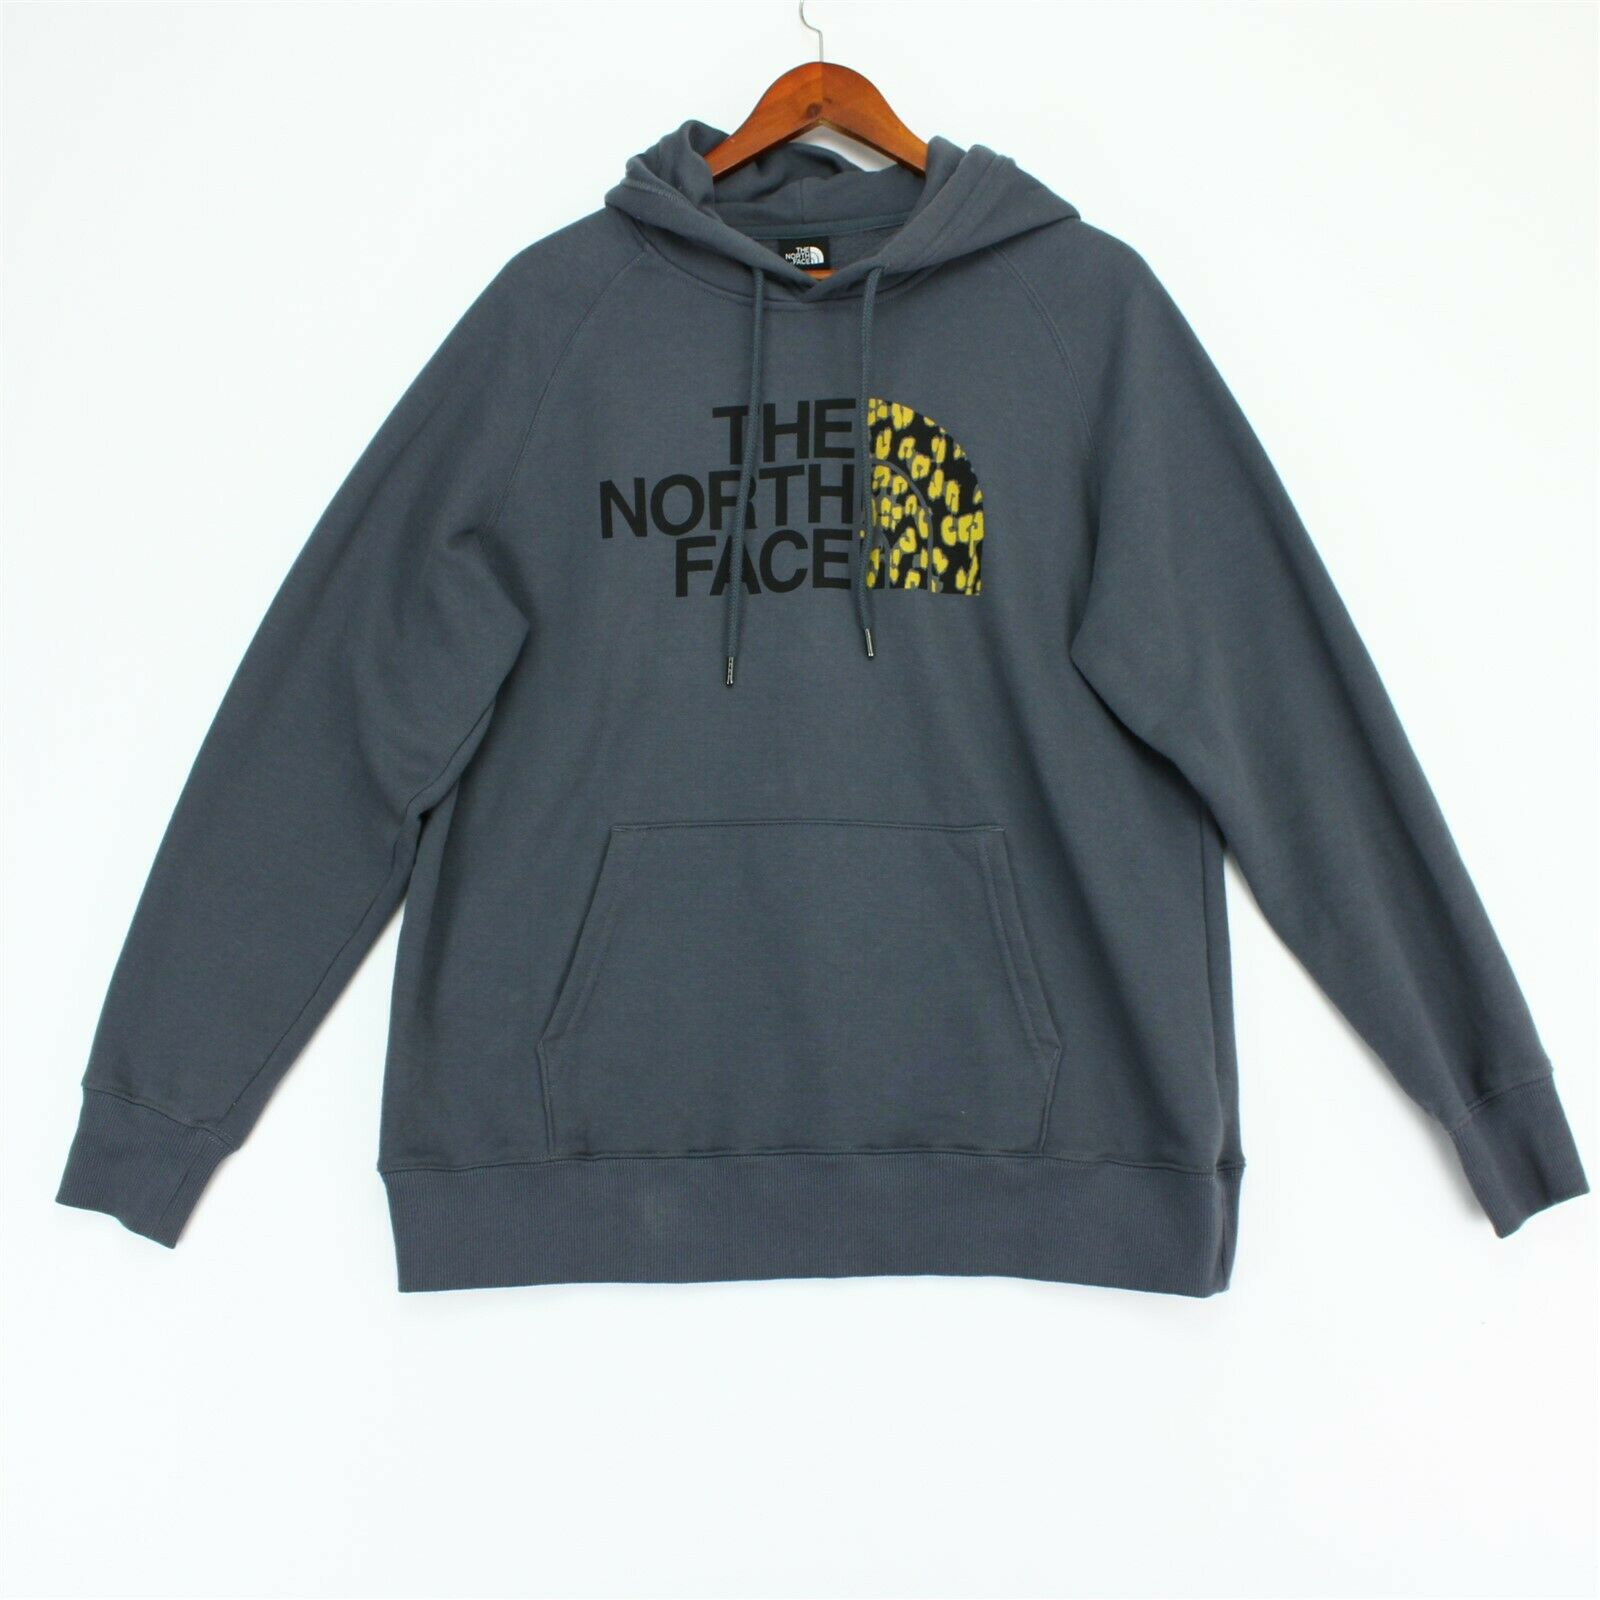 The North Face Half Dome Hoodie Womens Large Gray Sweatshirt